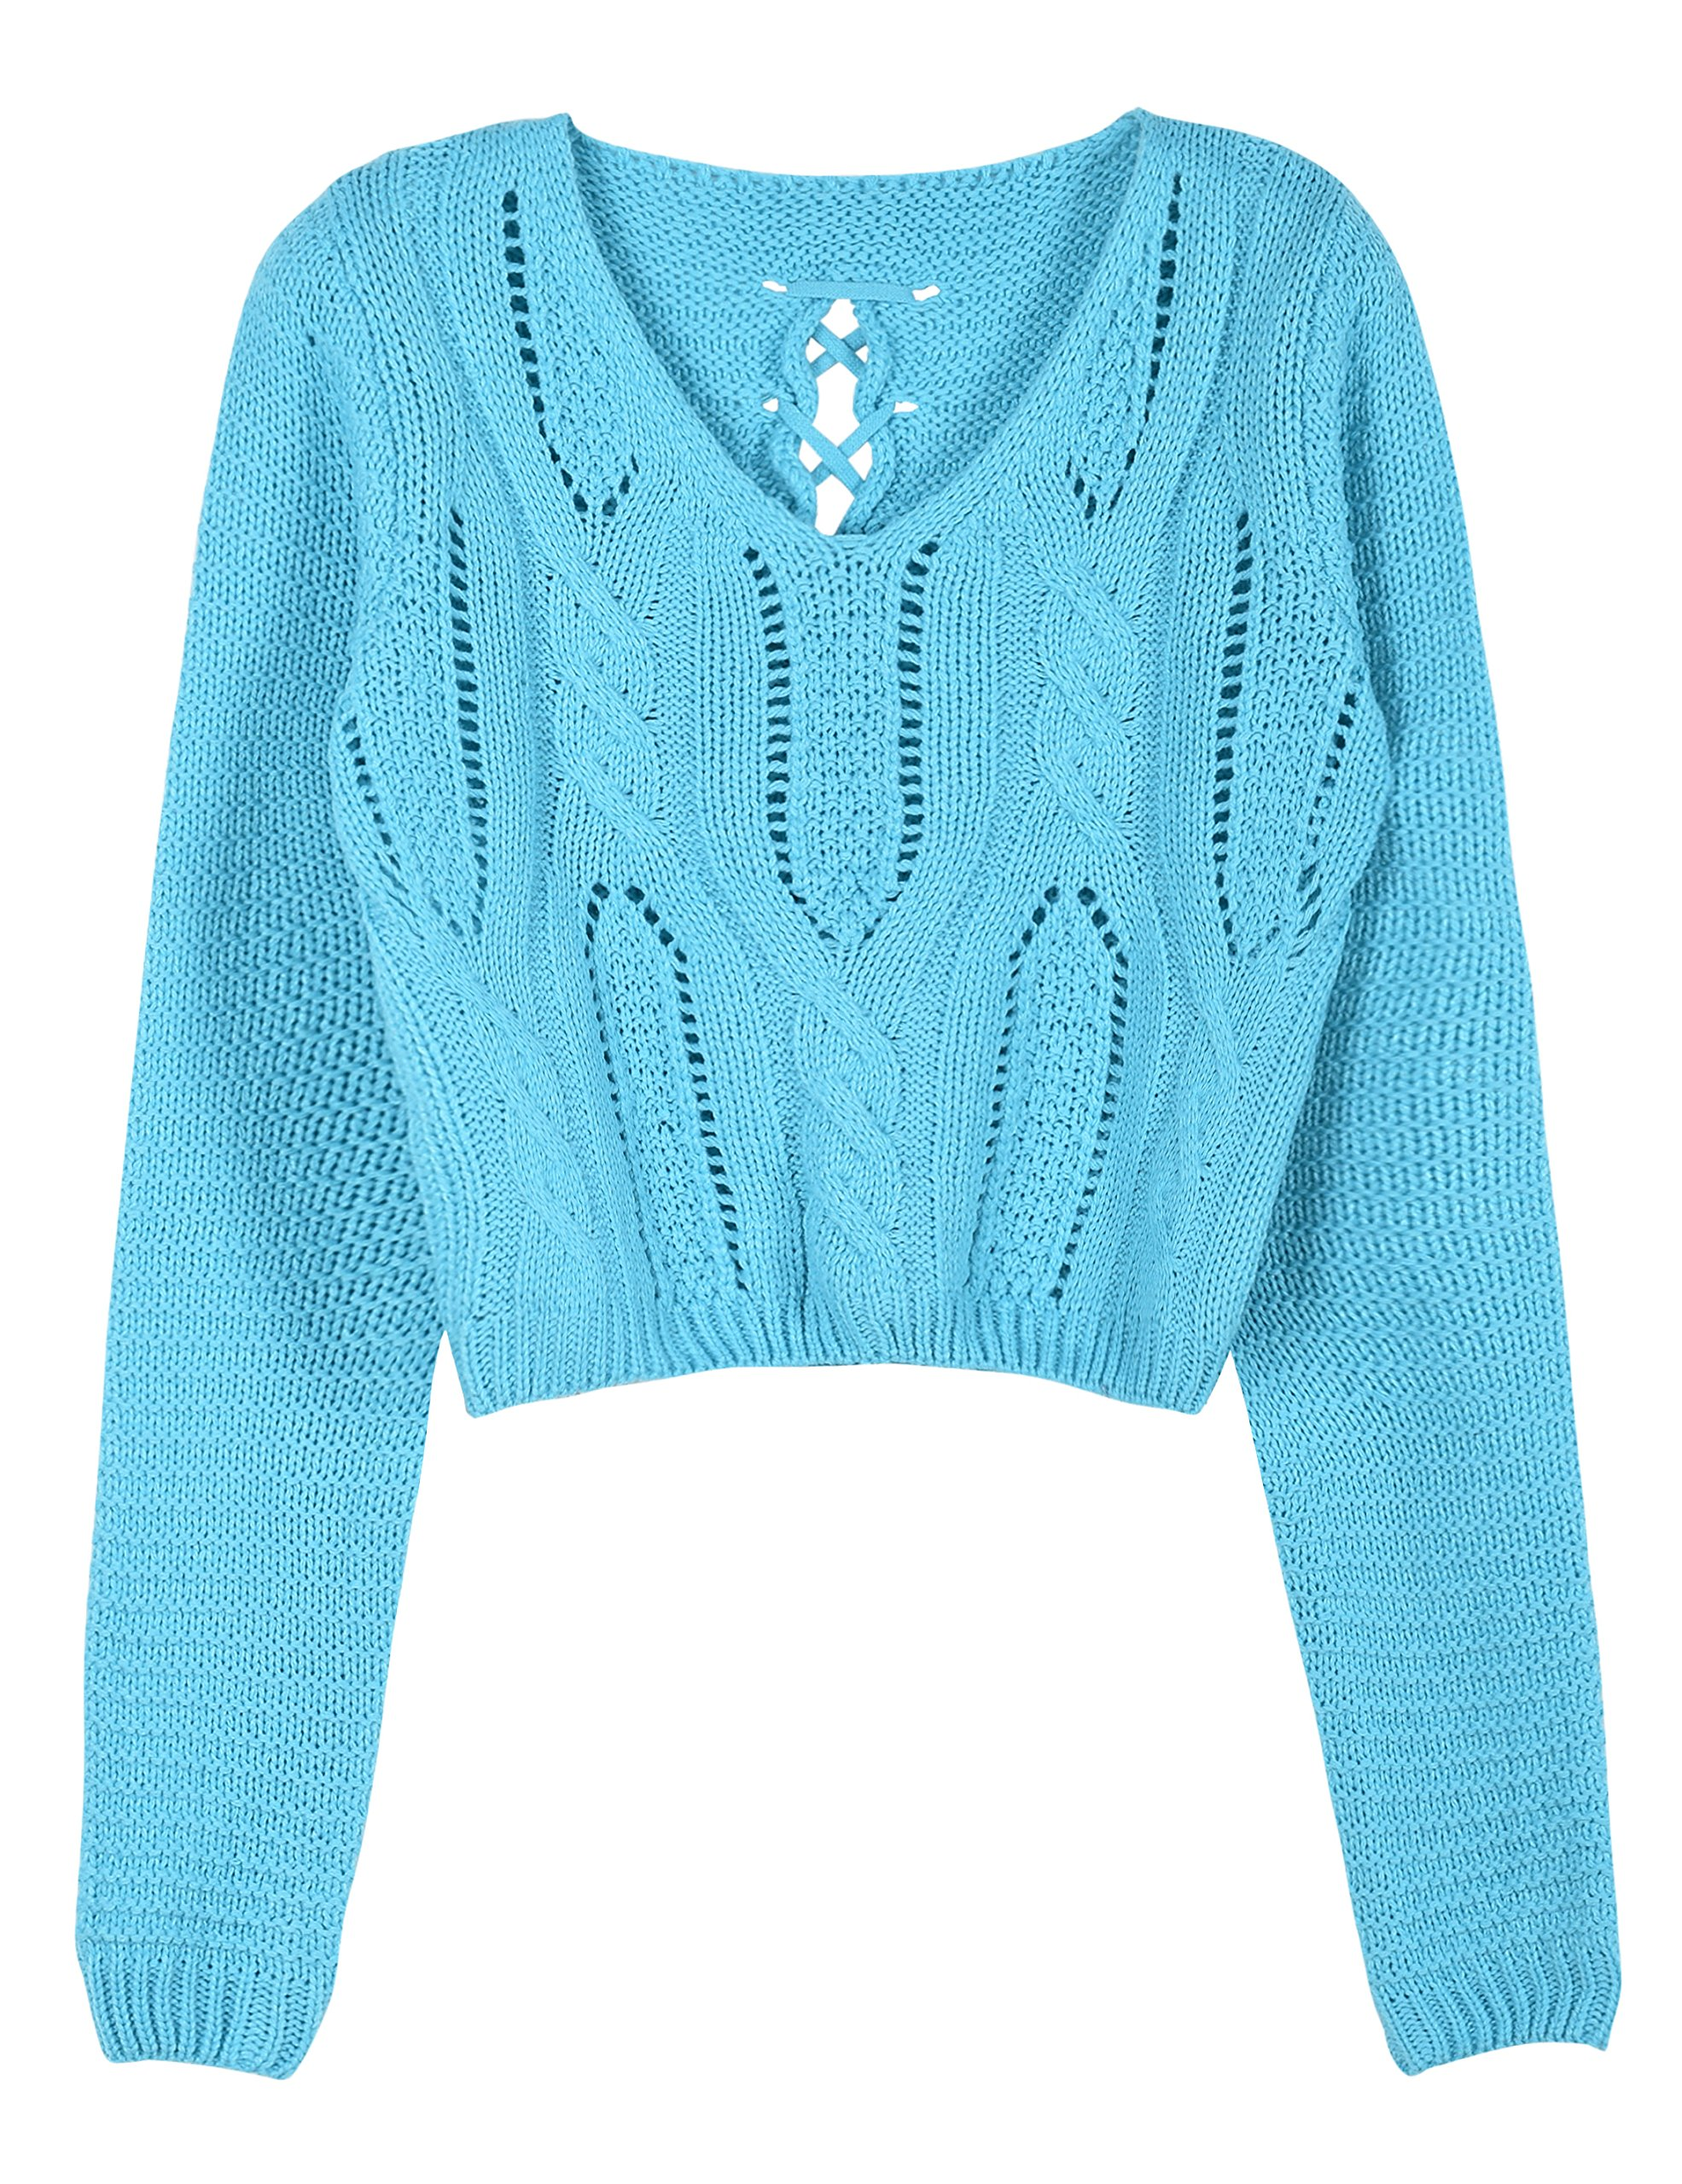 PrettyGuide Women's Long Sleeve Eyelet Cable Lace Up Crop Top Light Blue S